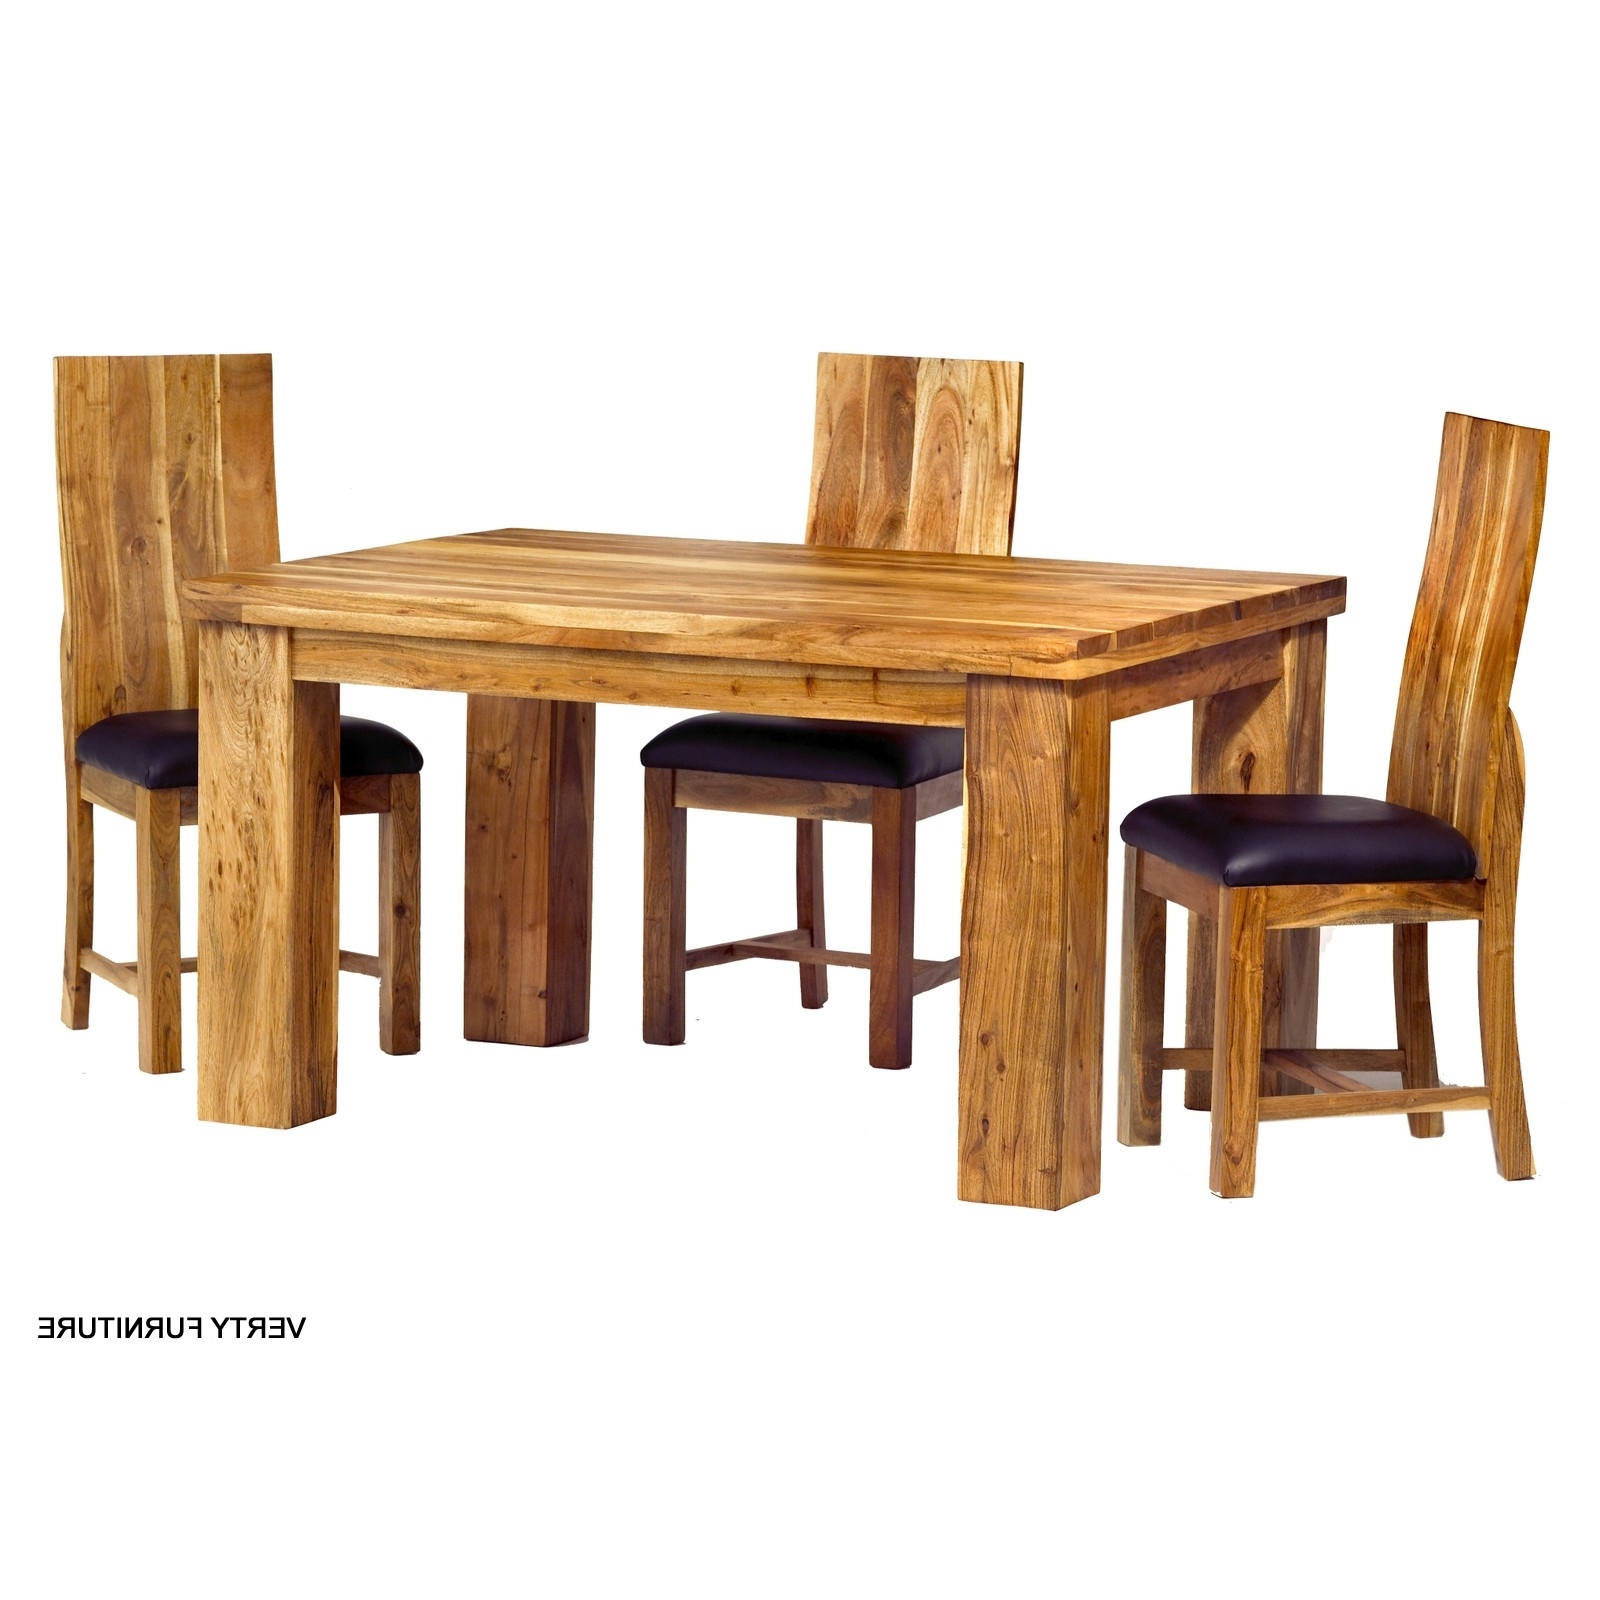 Famous Acacia Dining Table – Small With 4 Chairs – Verty Indian Furniture With Regard To Acacia Dining Tables (View 16 of 25)